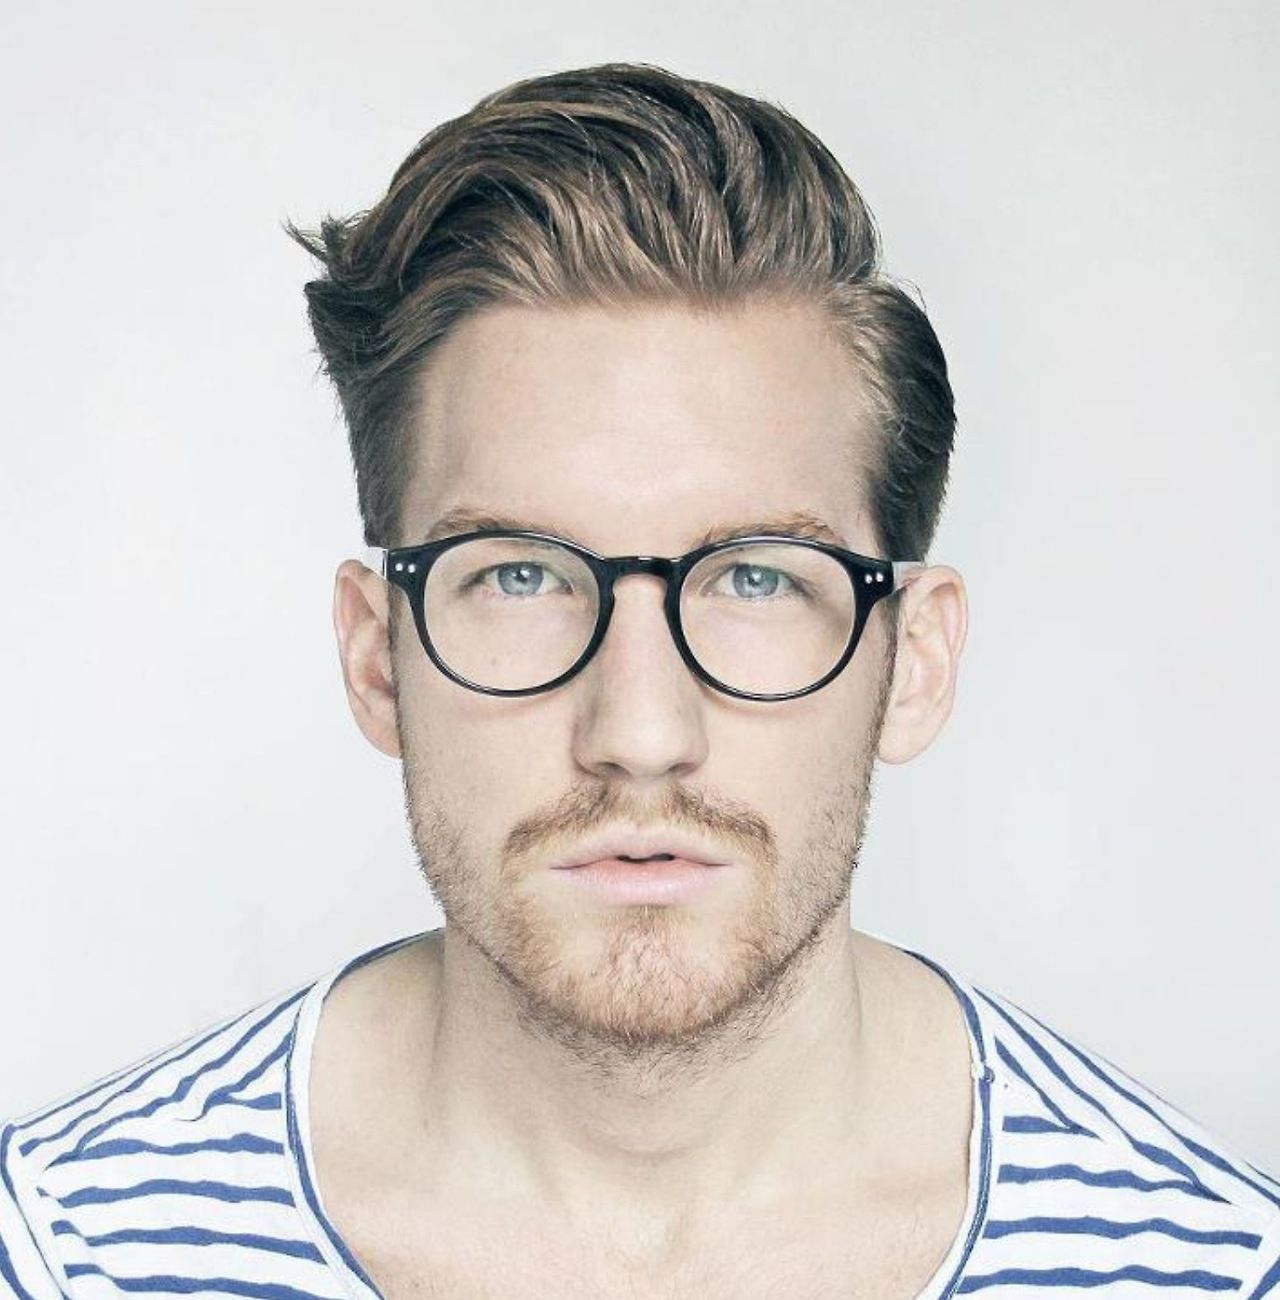 Mens Hairstyles With Glasses Guys With Good Hair And Classy Spectacles My Kinda Guys